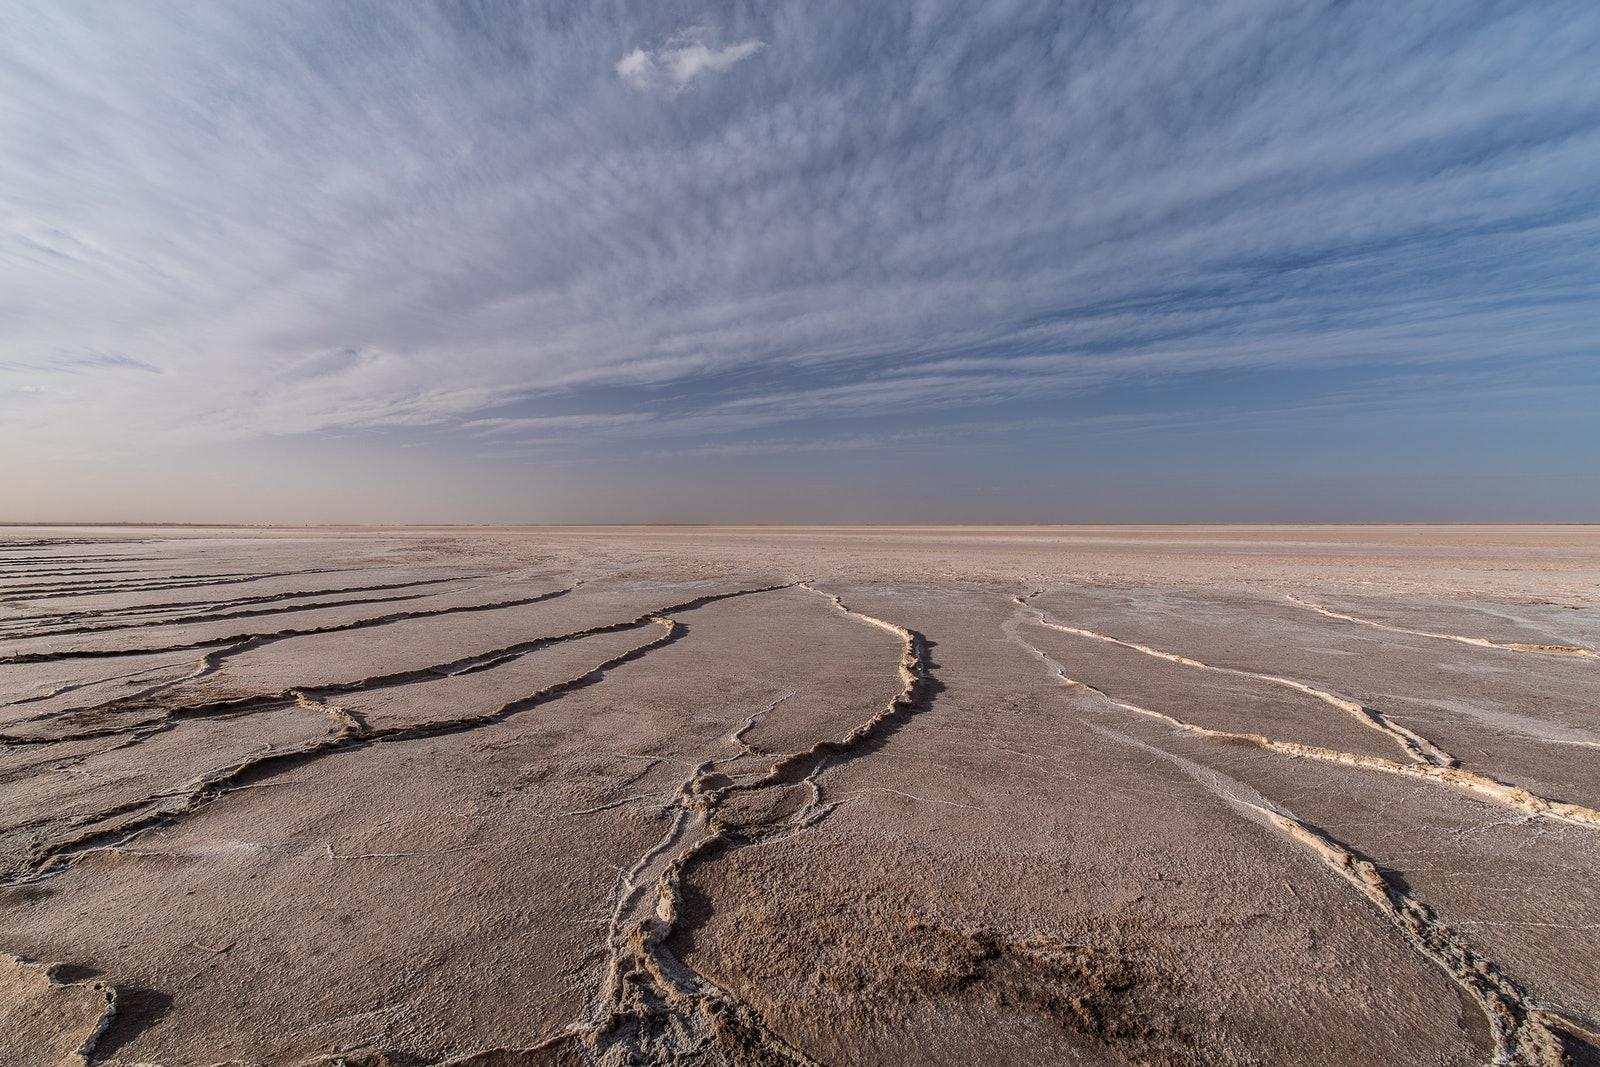 K1113616 - Earth fractures, Lake Tyrrell.